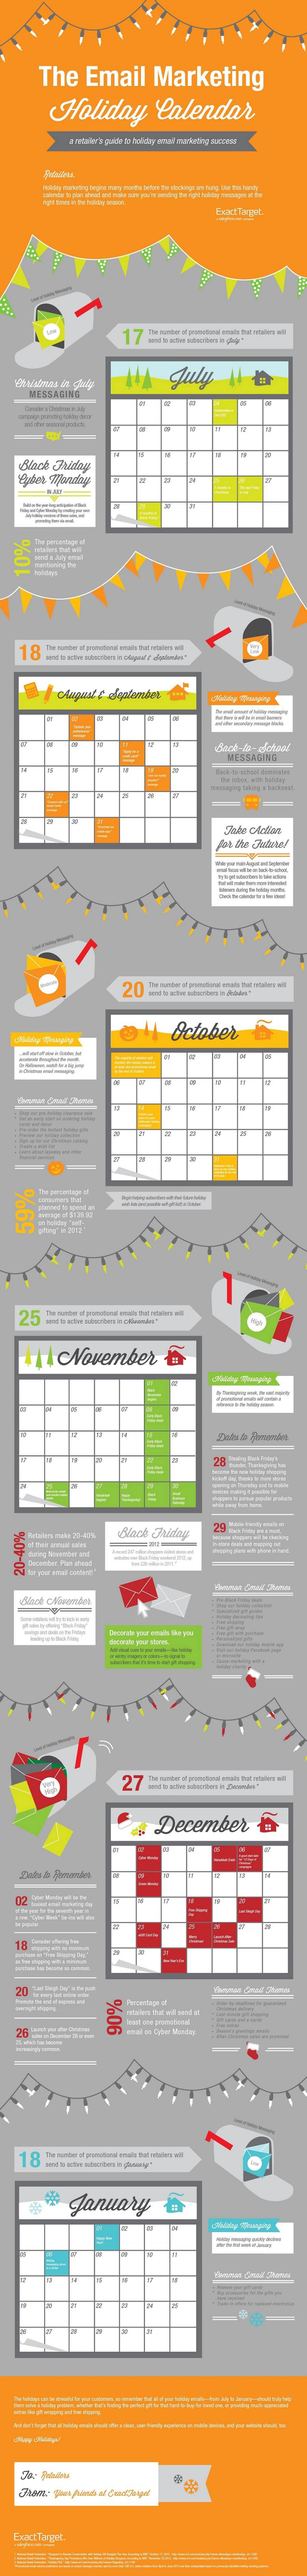 Email Marketing Holiday Calendar Infographic